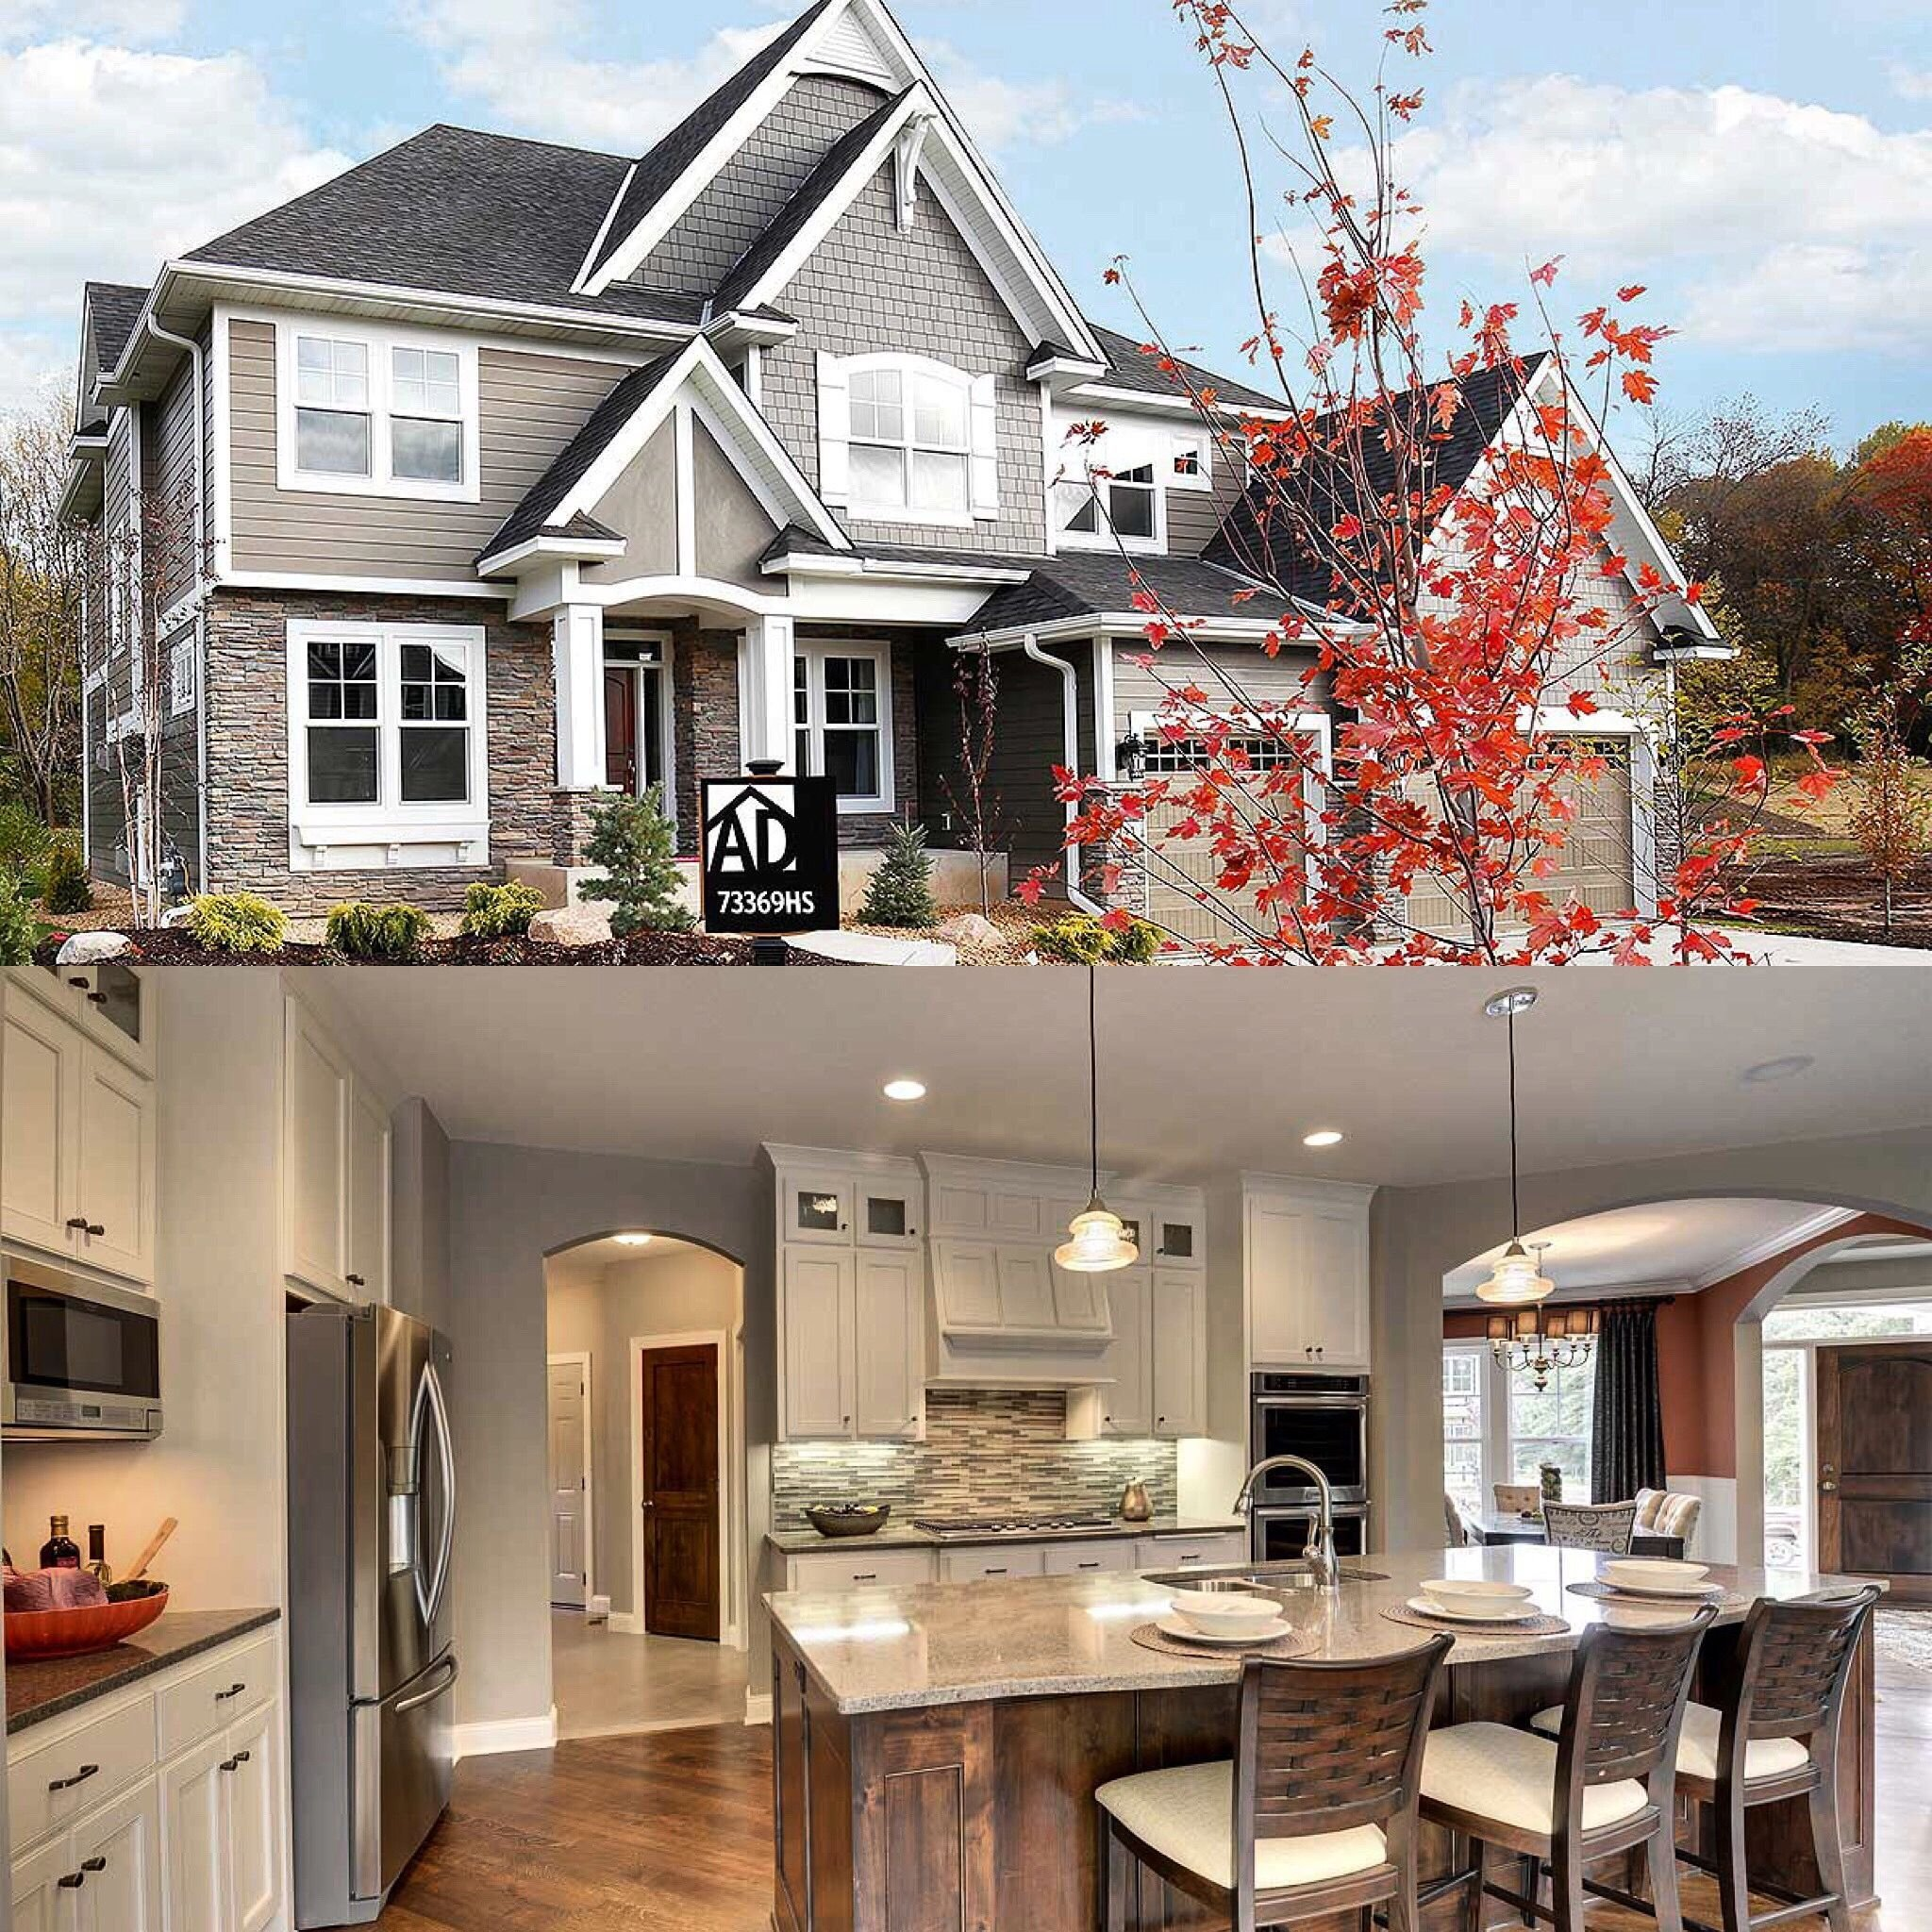 Best Plan 73369Hs 5 Bedroom Sport Court House Plan With Pictures